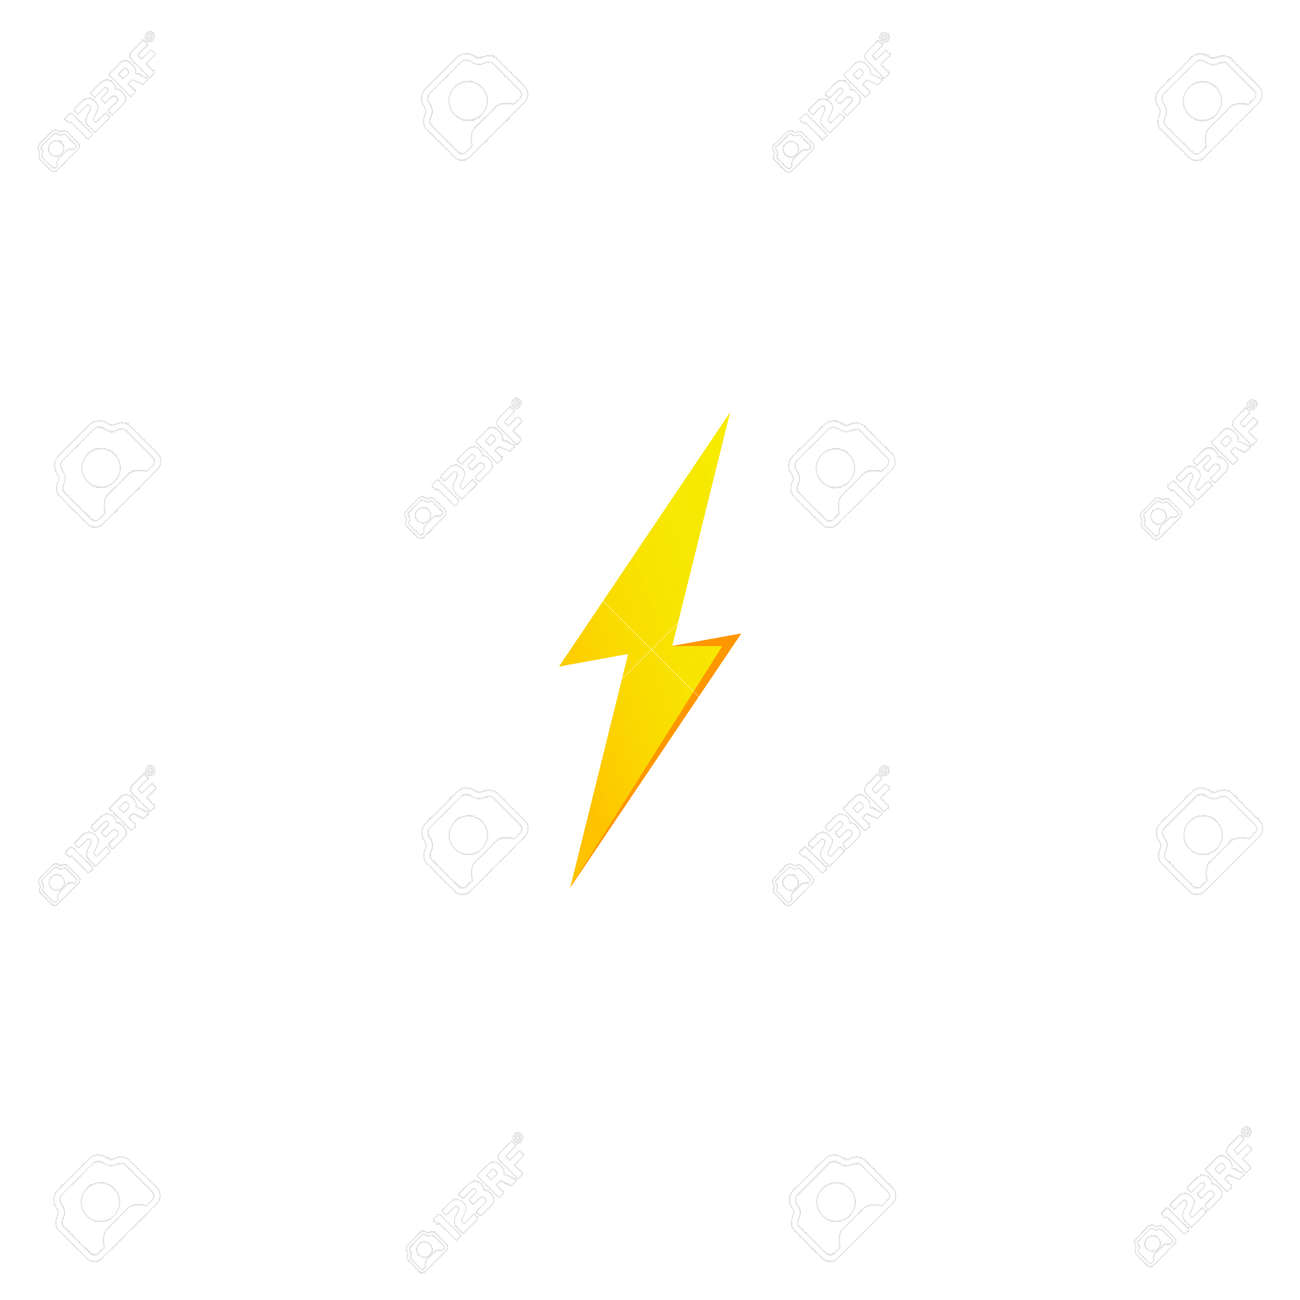 Simple Yellow Thunderbolt Icon Thunder Bolt And High Voltage Royalty Free Cliparts Vectors And Stock Illustration Image 114439750